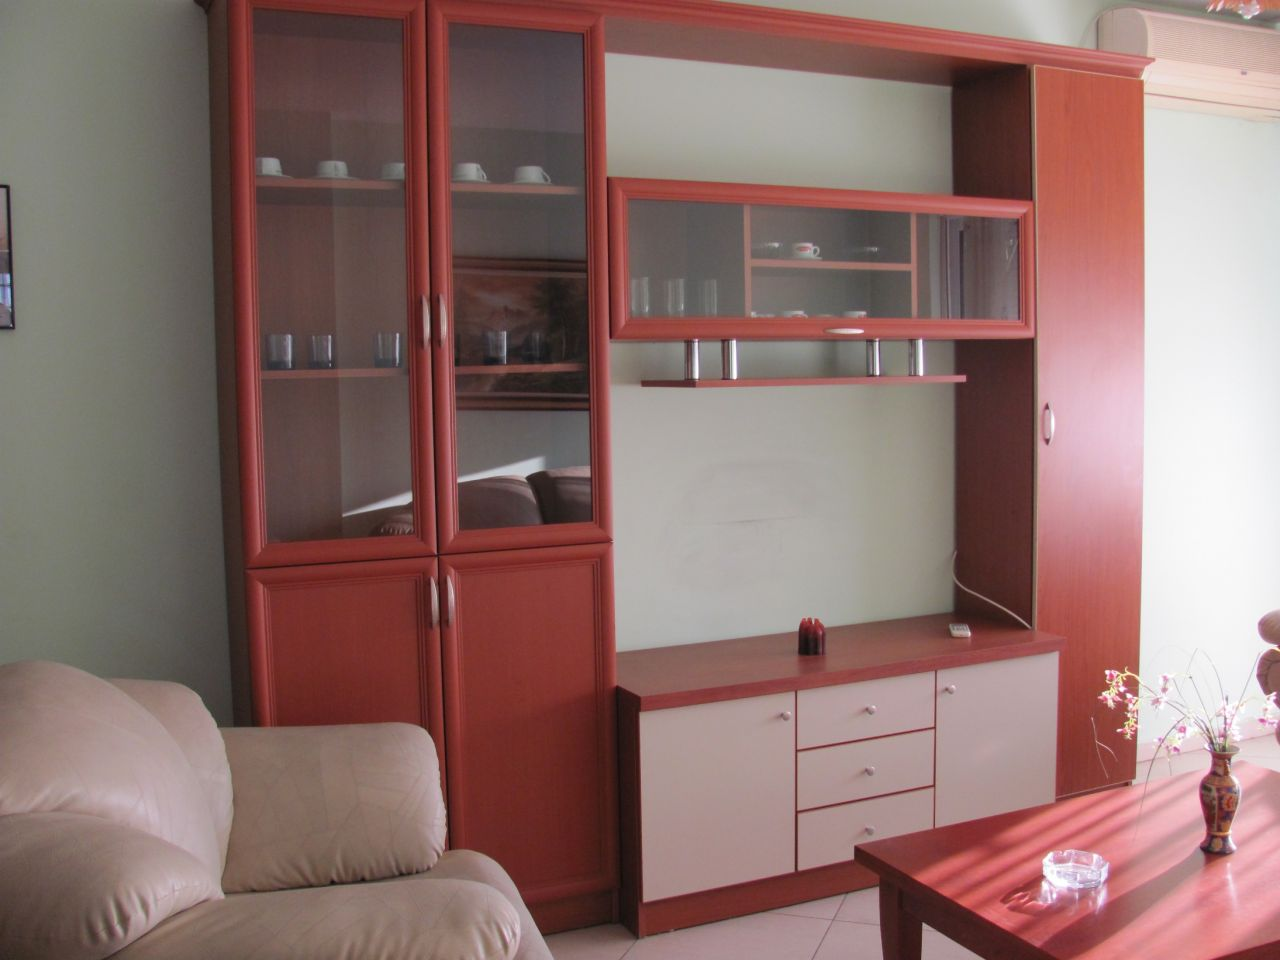 Apartment for rent in Tirana, situated near the Blloku area and the park of the lake.